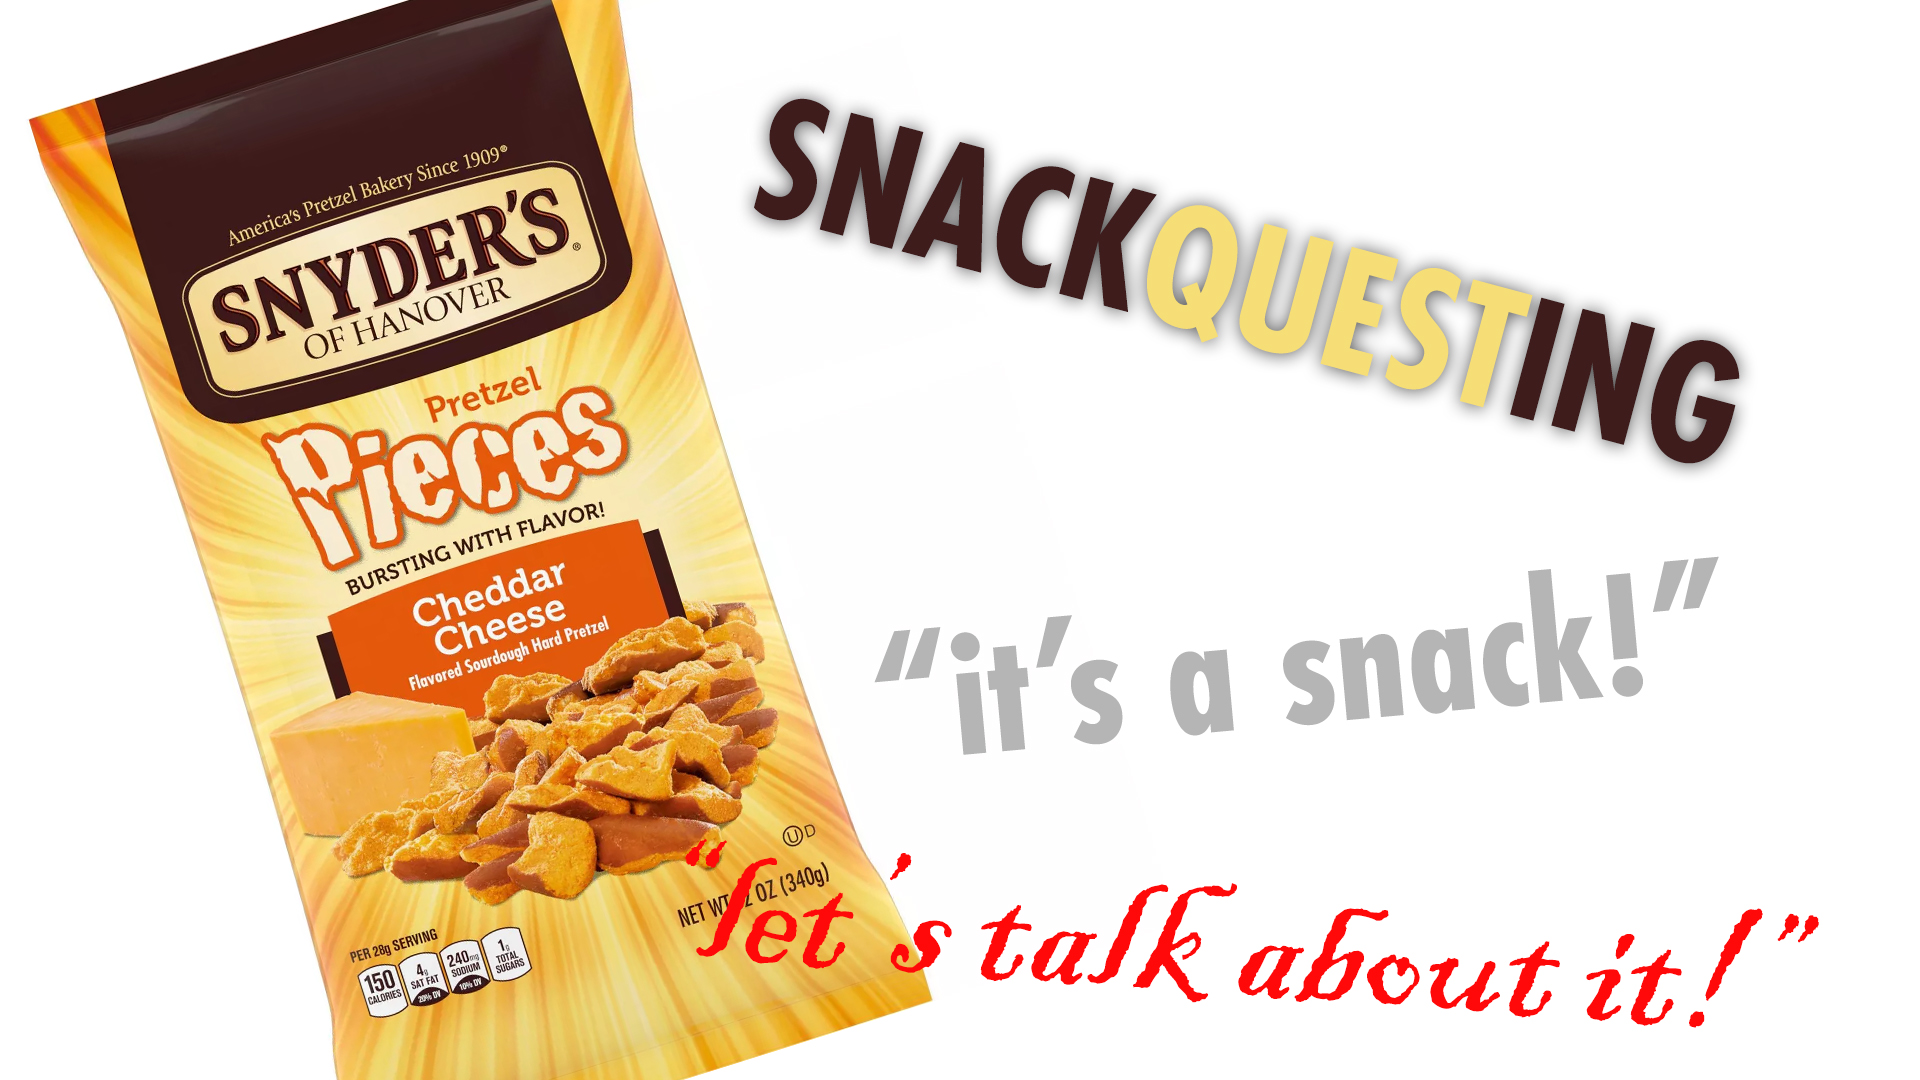 The SideQuest LIVE May 25, 2021: The Final Fantasy SnackQuest